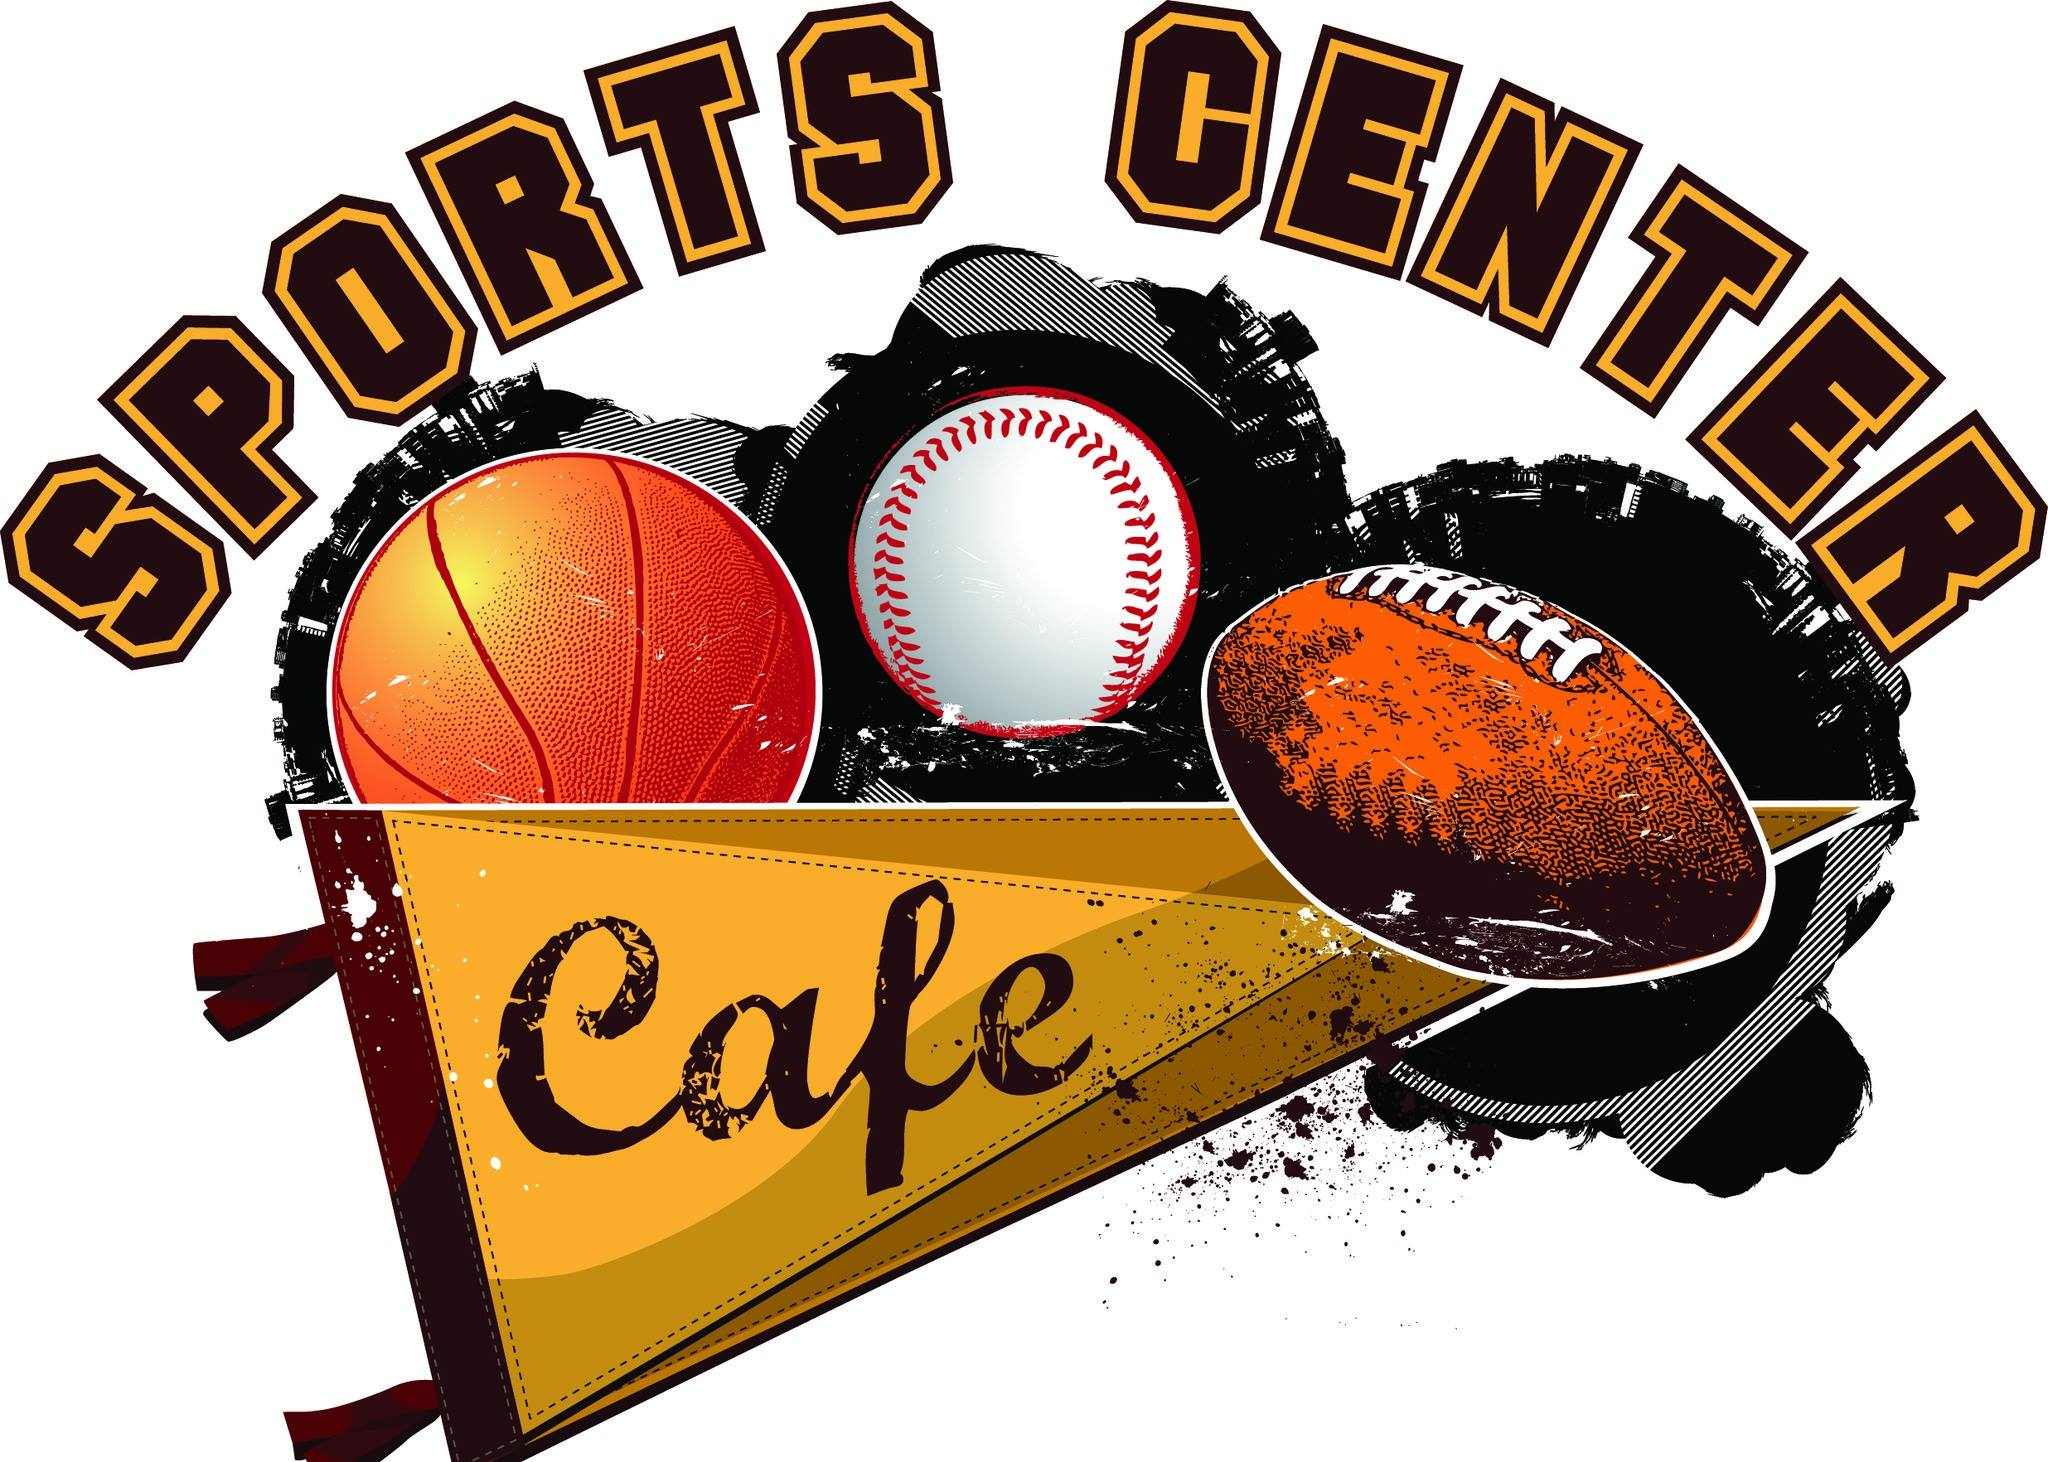 sports-center-cafe-logo